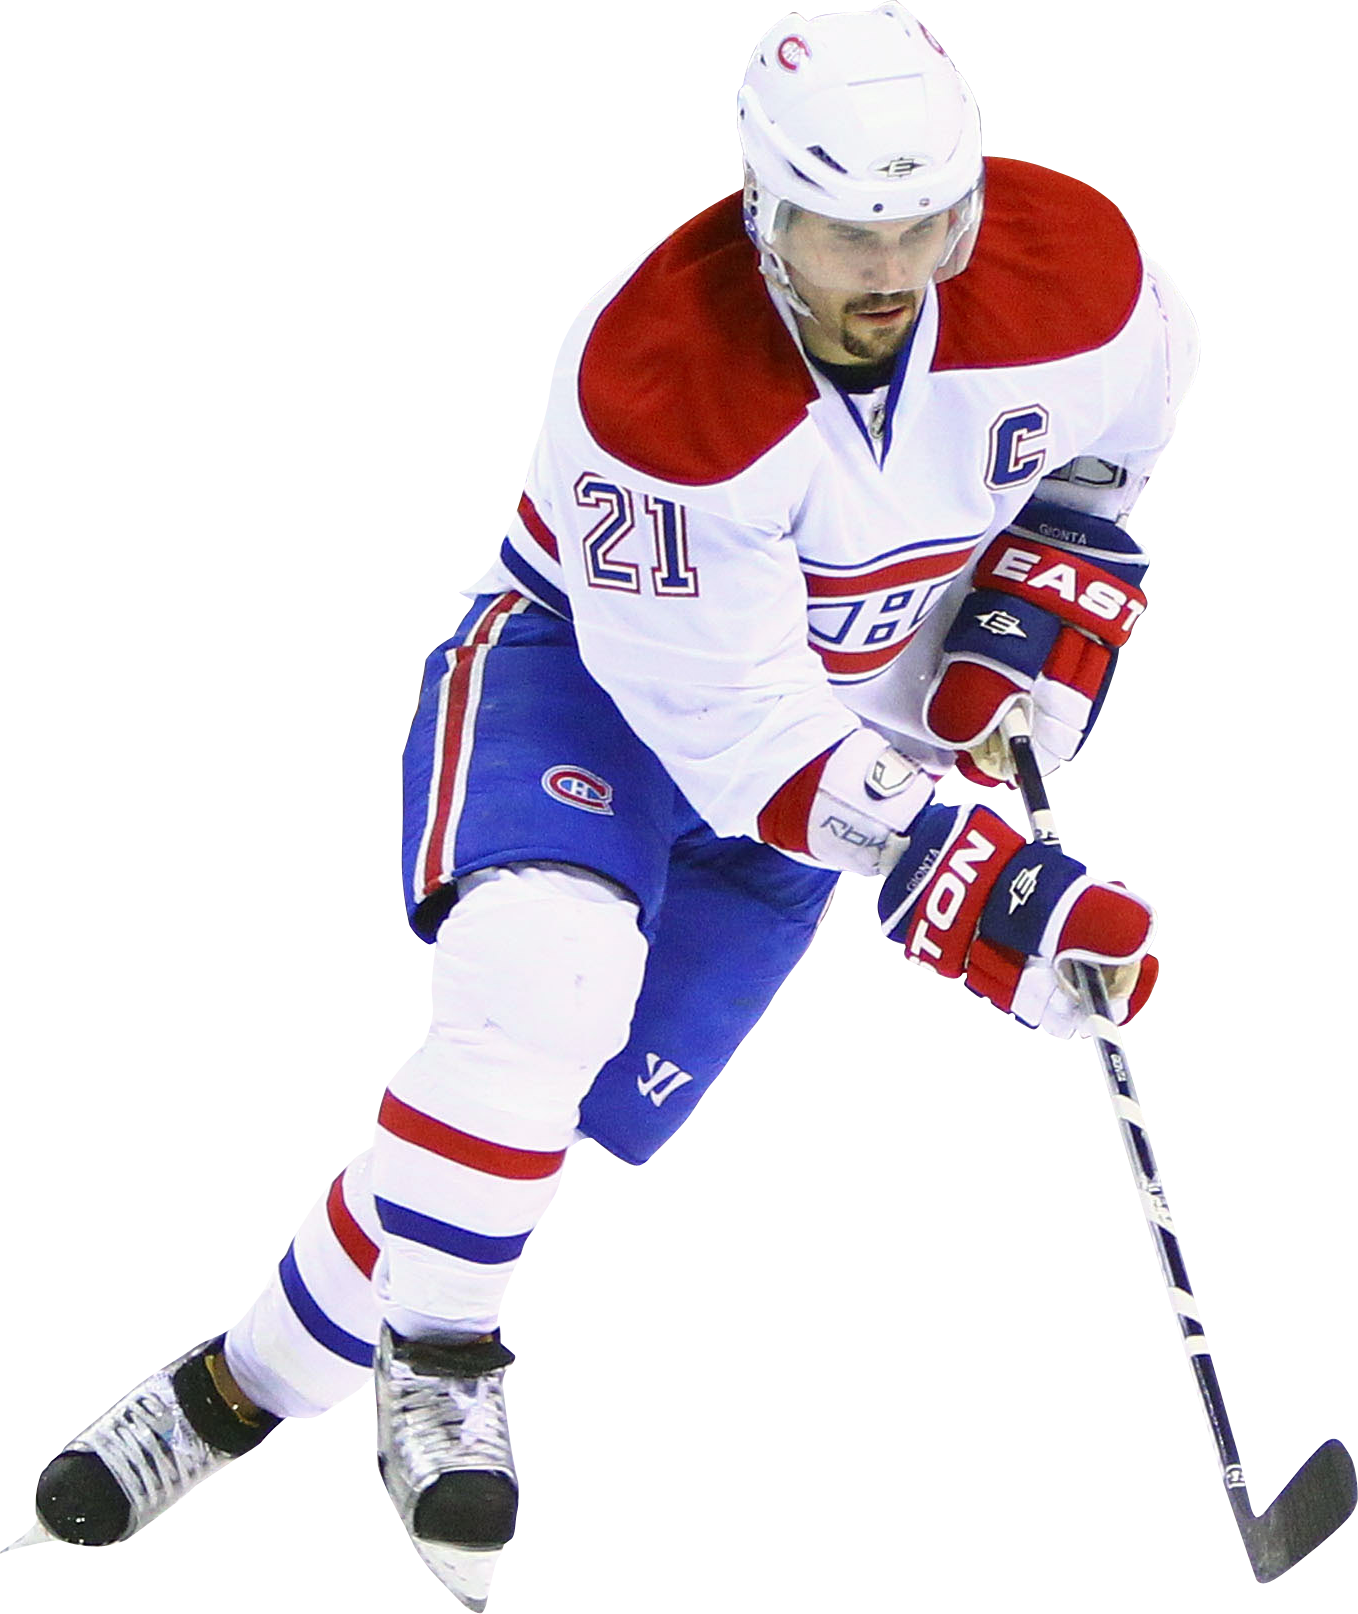 Hd Hockey Png Transparent Background image #48023